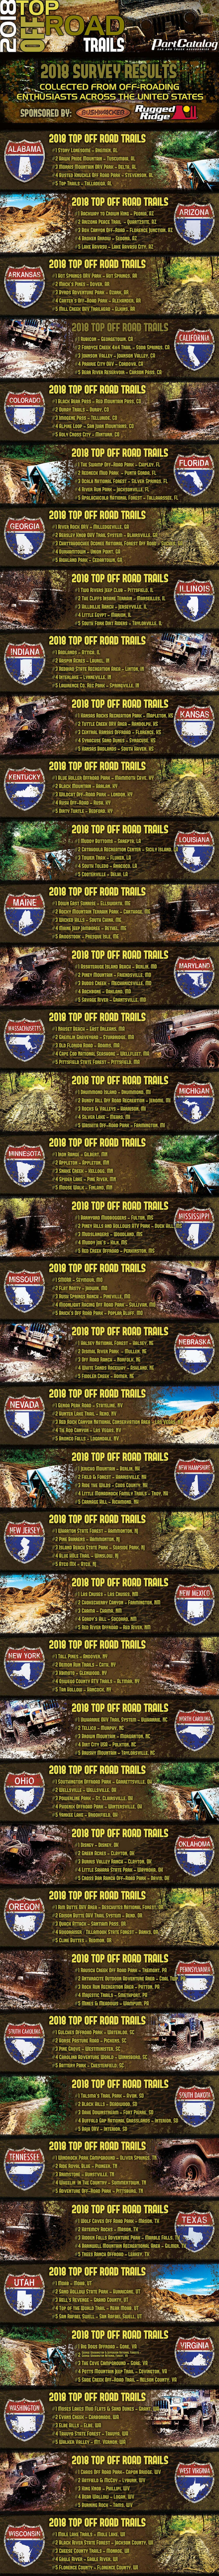 America S Top Off Road Trails And Parks Offroad Jeep Trails Trail